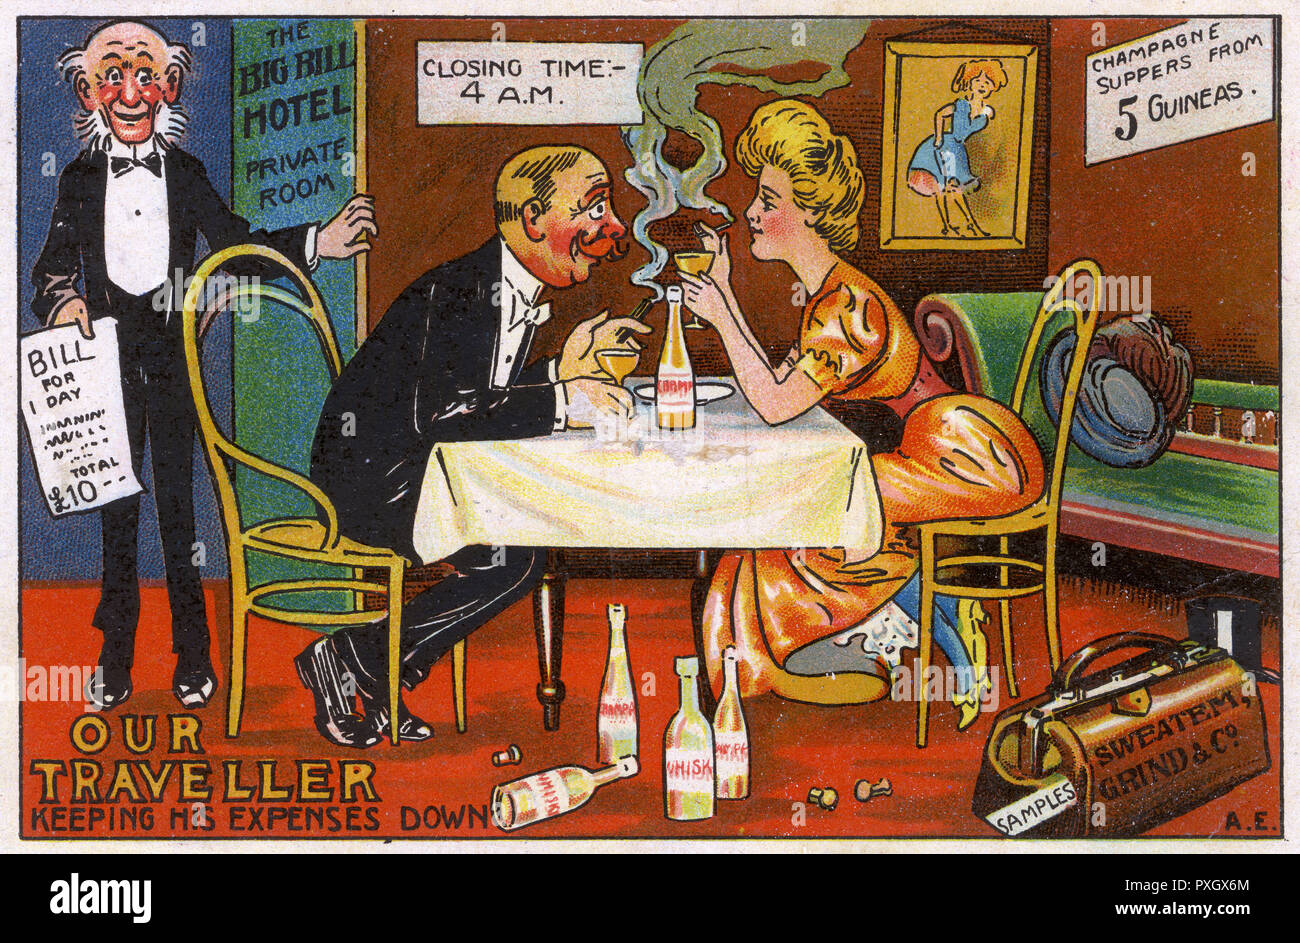 A travelling Salesman (for 'Sweatem, Grand & Co.) is spectacularly failing to keep his expenses down! He is piling through the whiskey, occupying a private room, wining and dining a pretty girl and partaking of a Champagne supper. The waiter is now arriving with the bill...     Date: 1910 - Stock Image